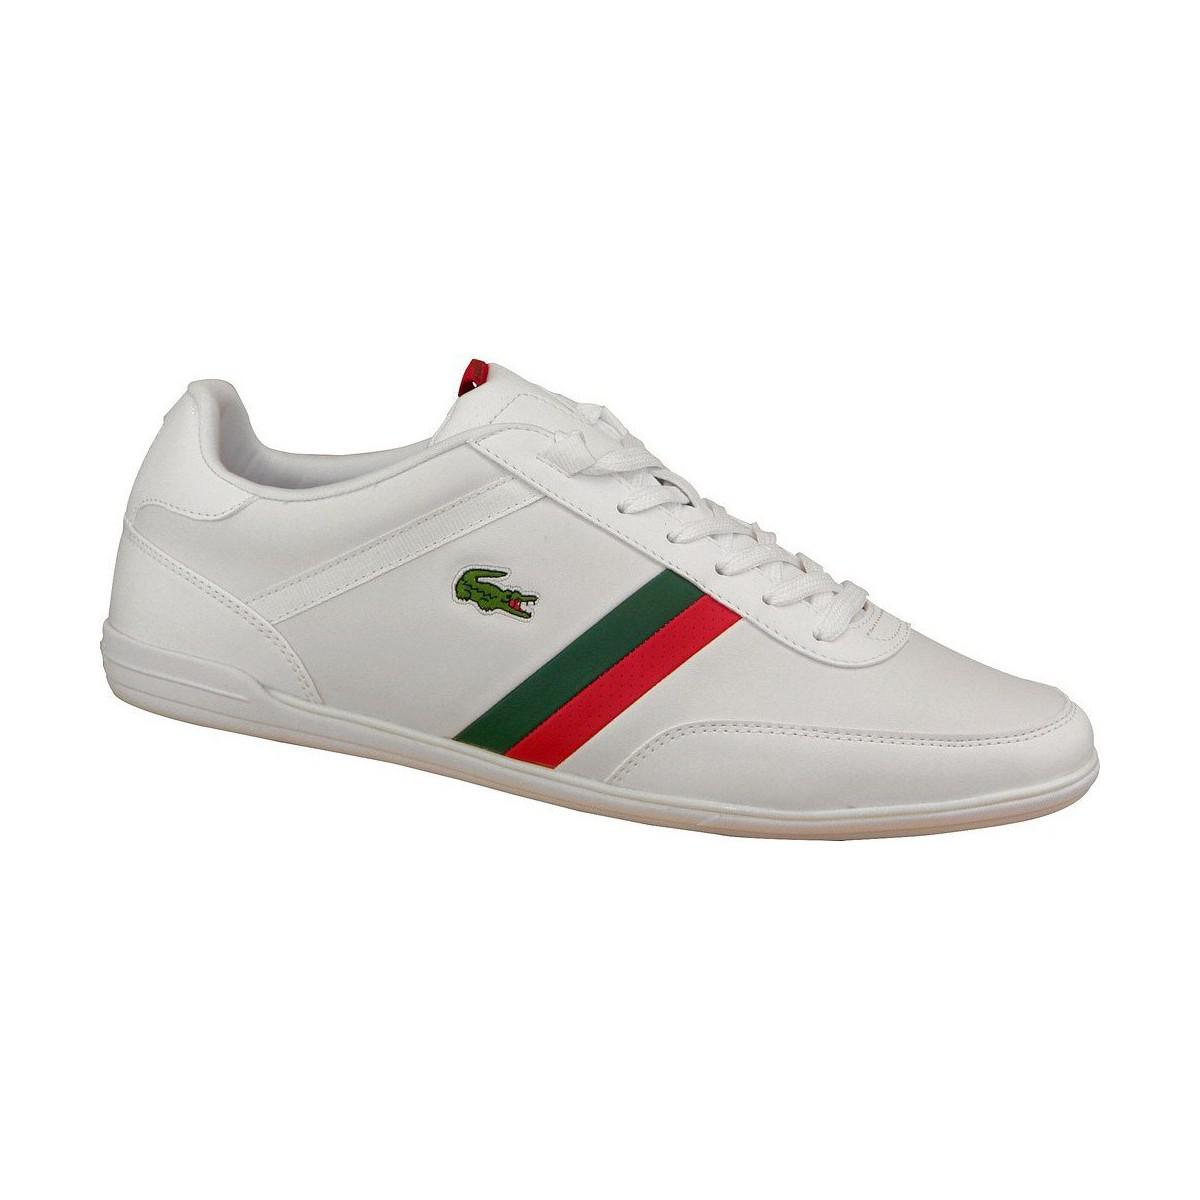 3ec0646249b7c9 Lacoste Giron Scy Spm Men s Shoes (trainers) In White in White for ...